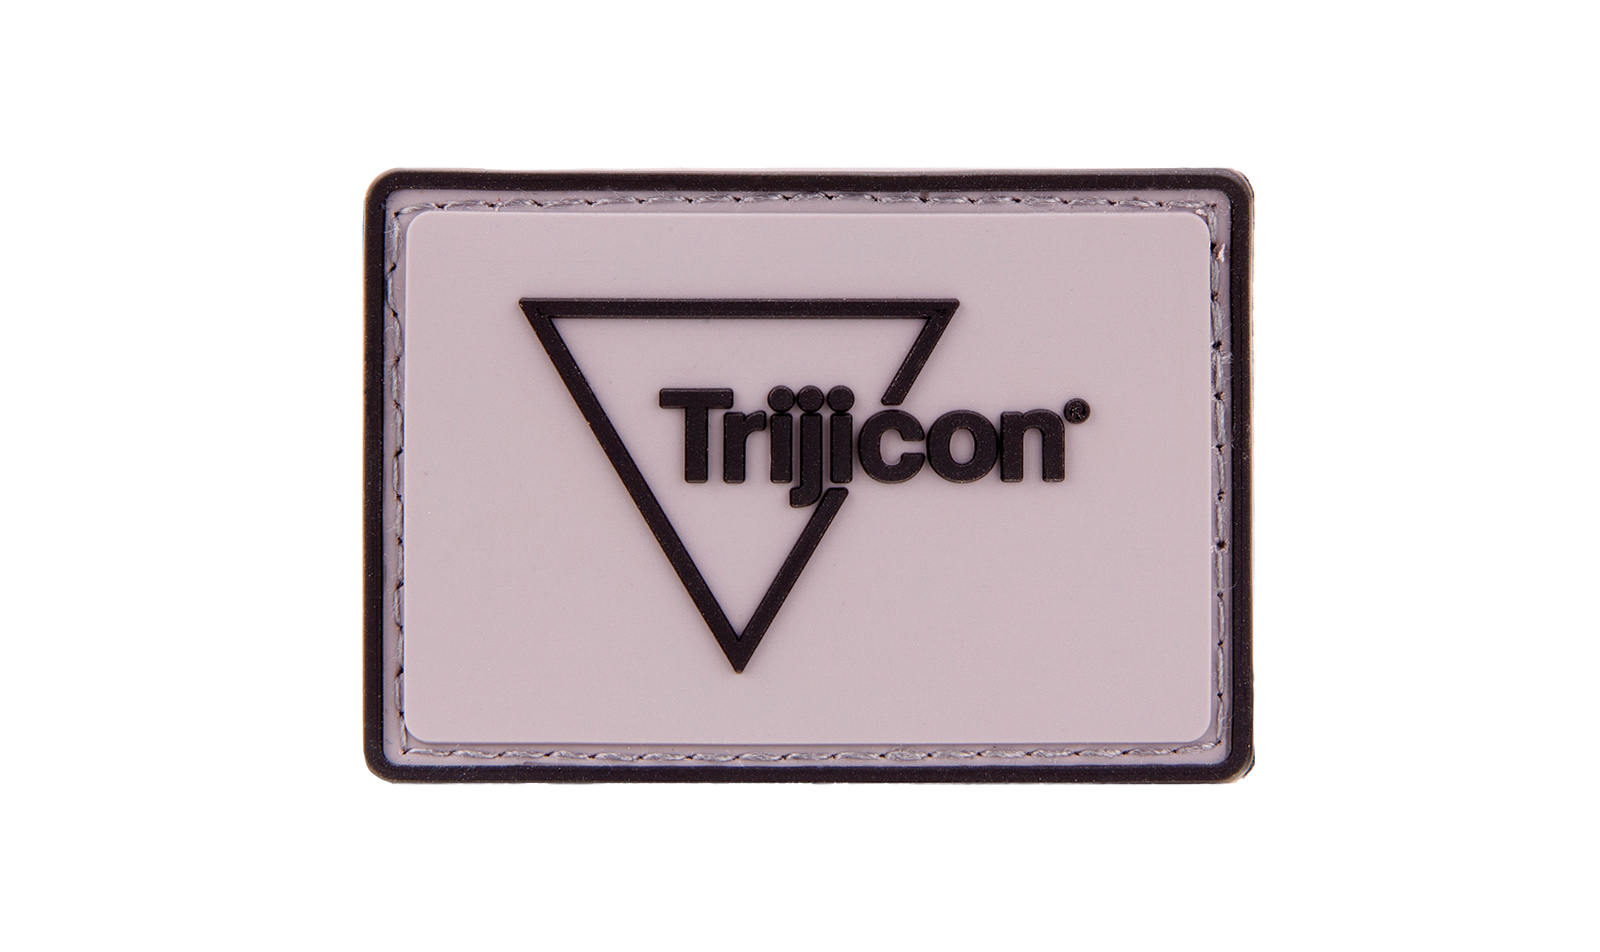 Trijicon<sup>®</sup> Logo Patch - Gray